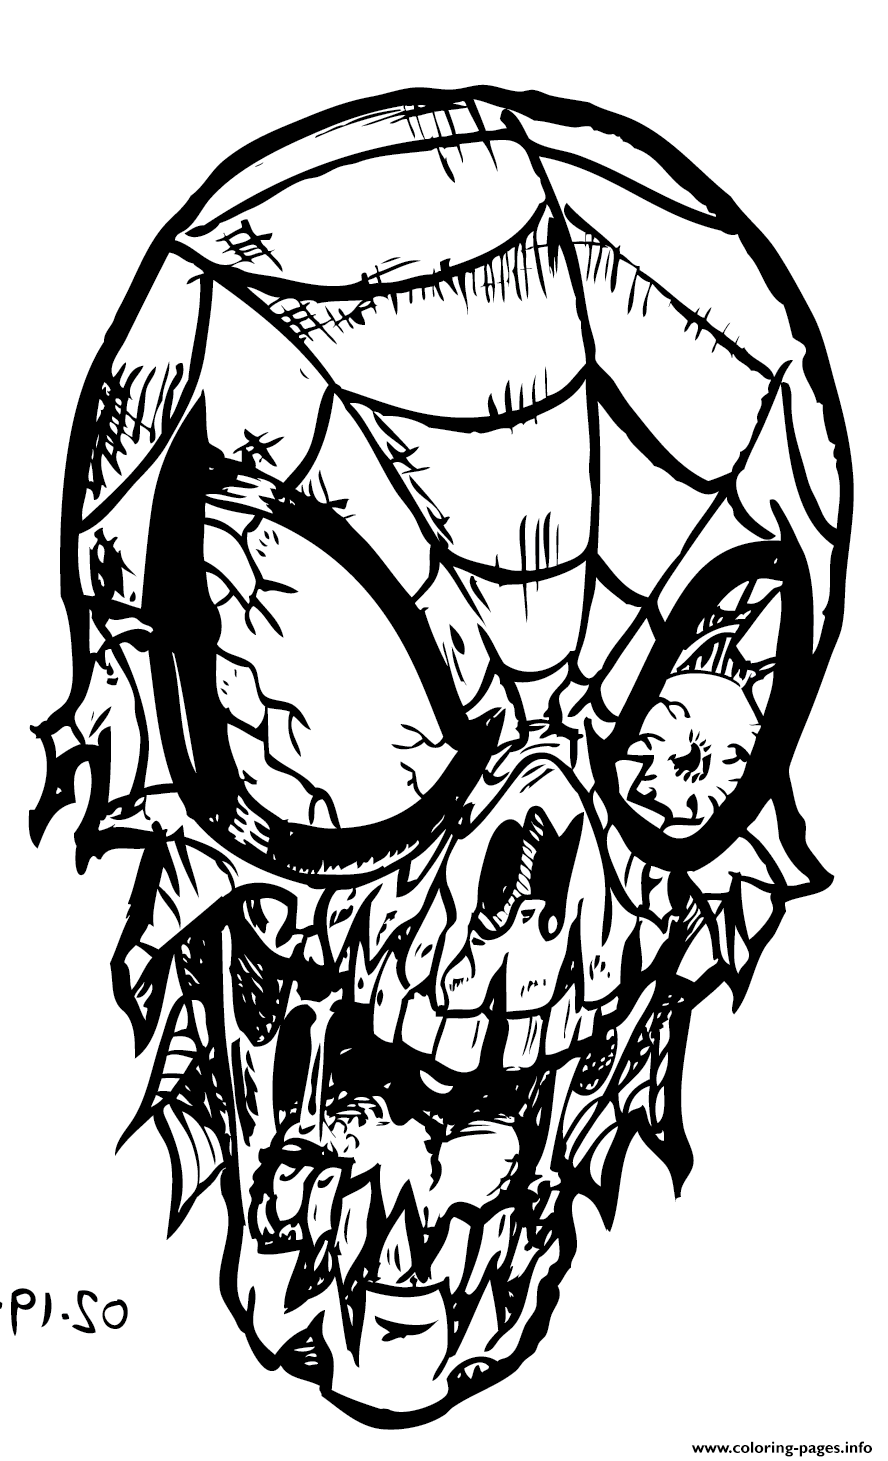 Print Spiderman Zombie Coloring Pages Spiderman Coloring Batman Coloring Pages Animal Coloring Pages